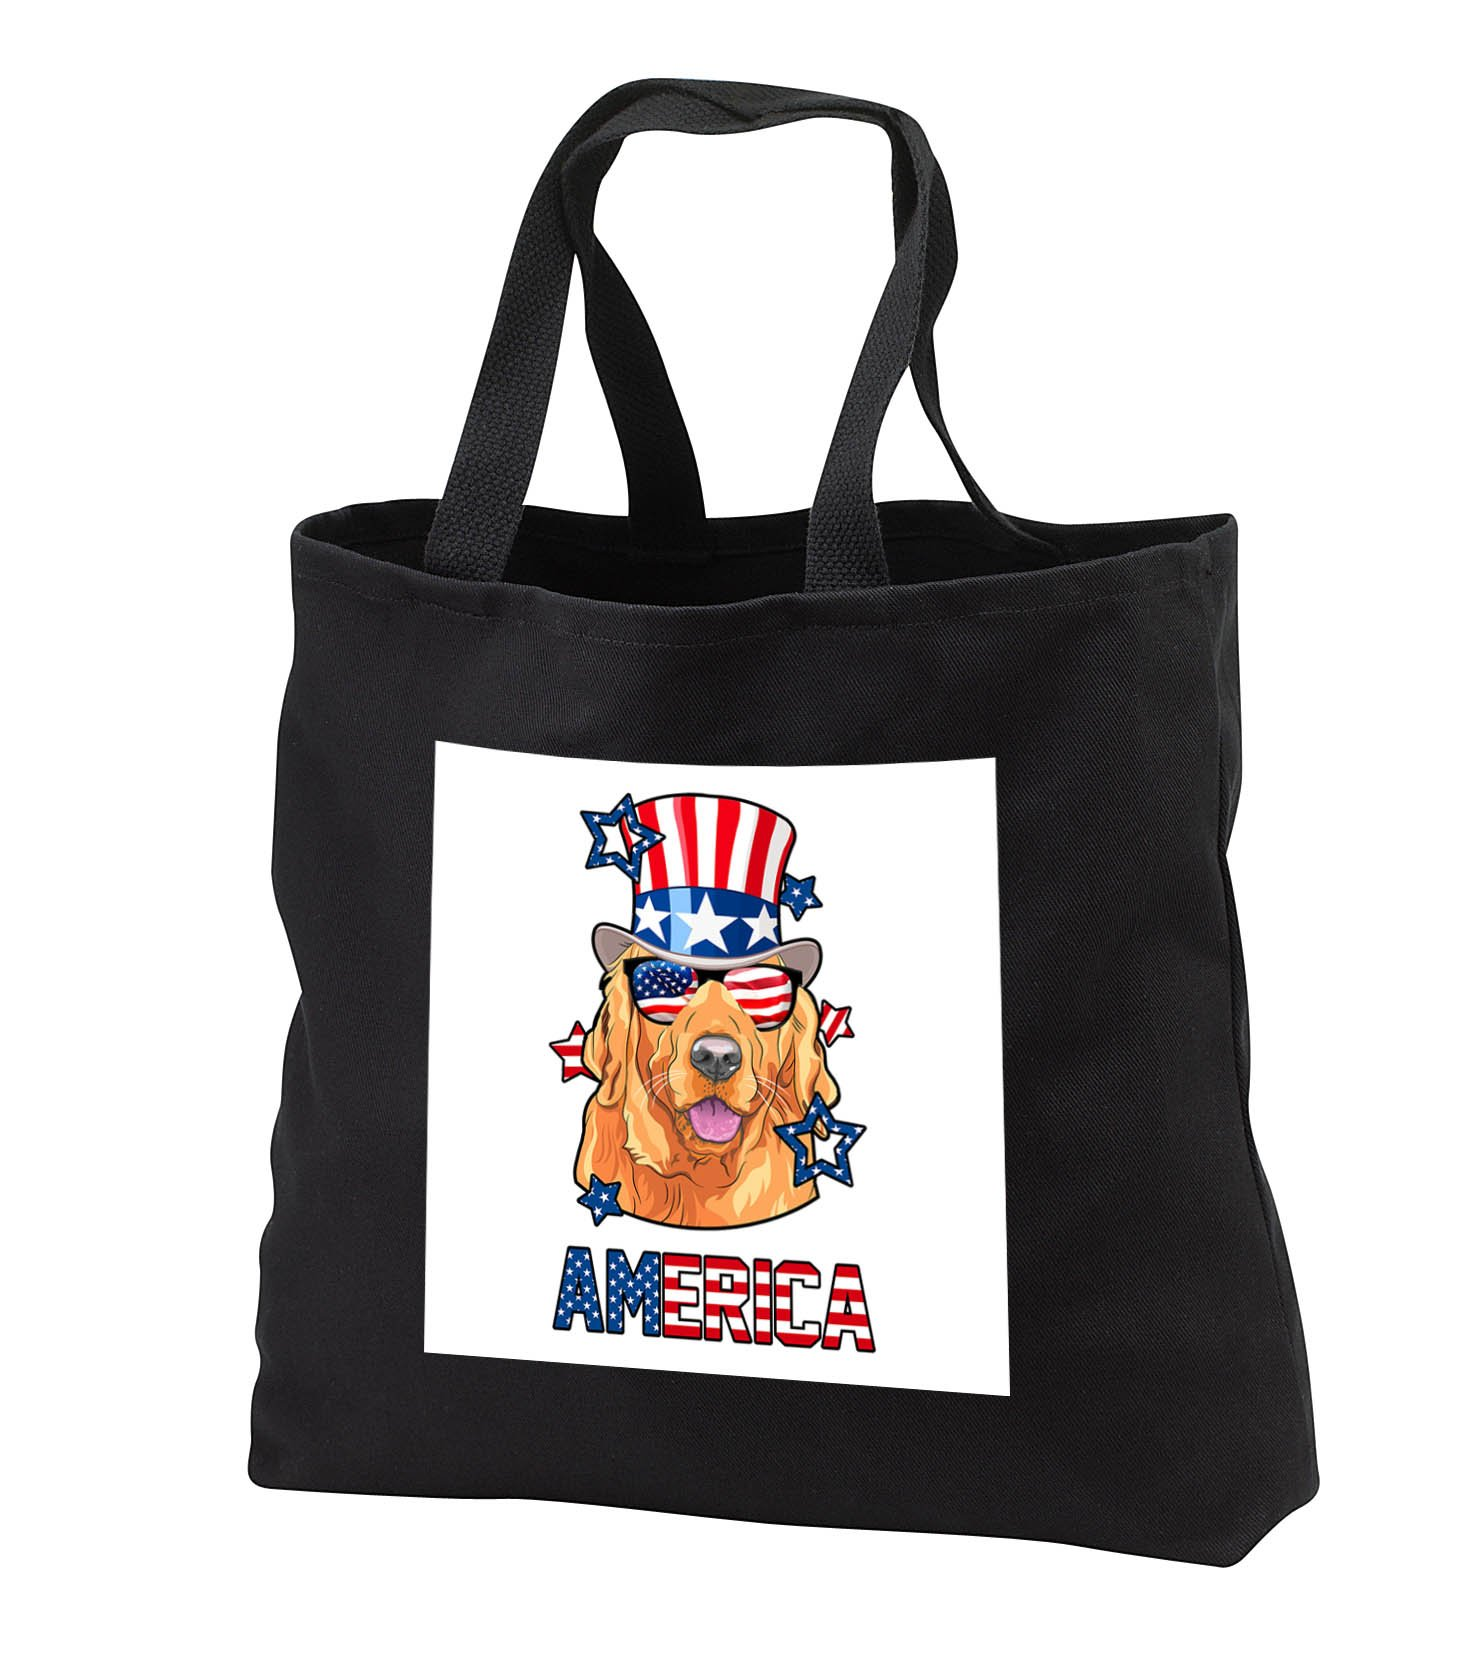 Patriotic American Dogs - Labrador Retriever With American Flag Sunglasses Tophat Dog America - Tote Bags - Black Tote Bag 14w x 14h x 3d (tb_284223_1)